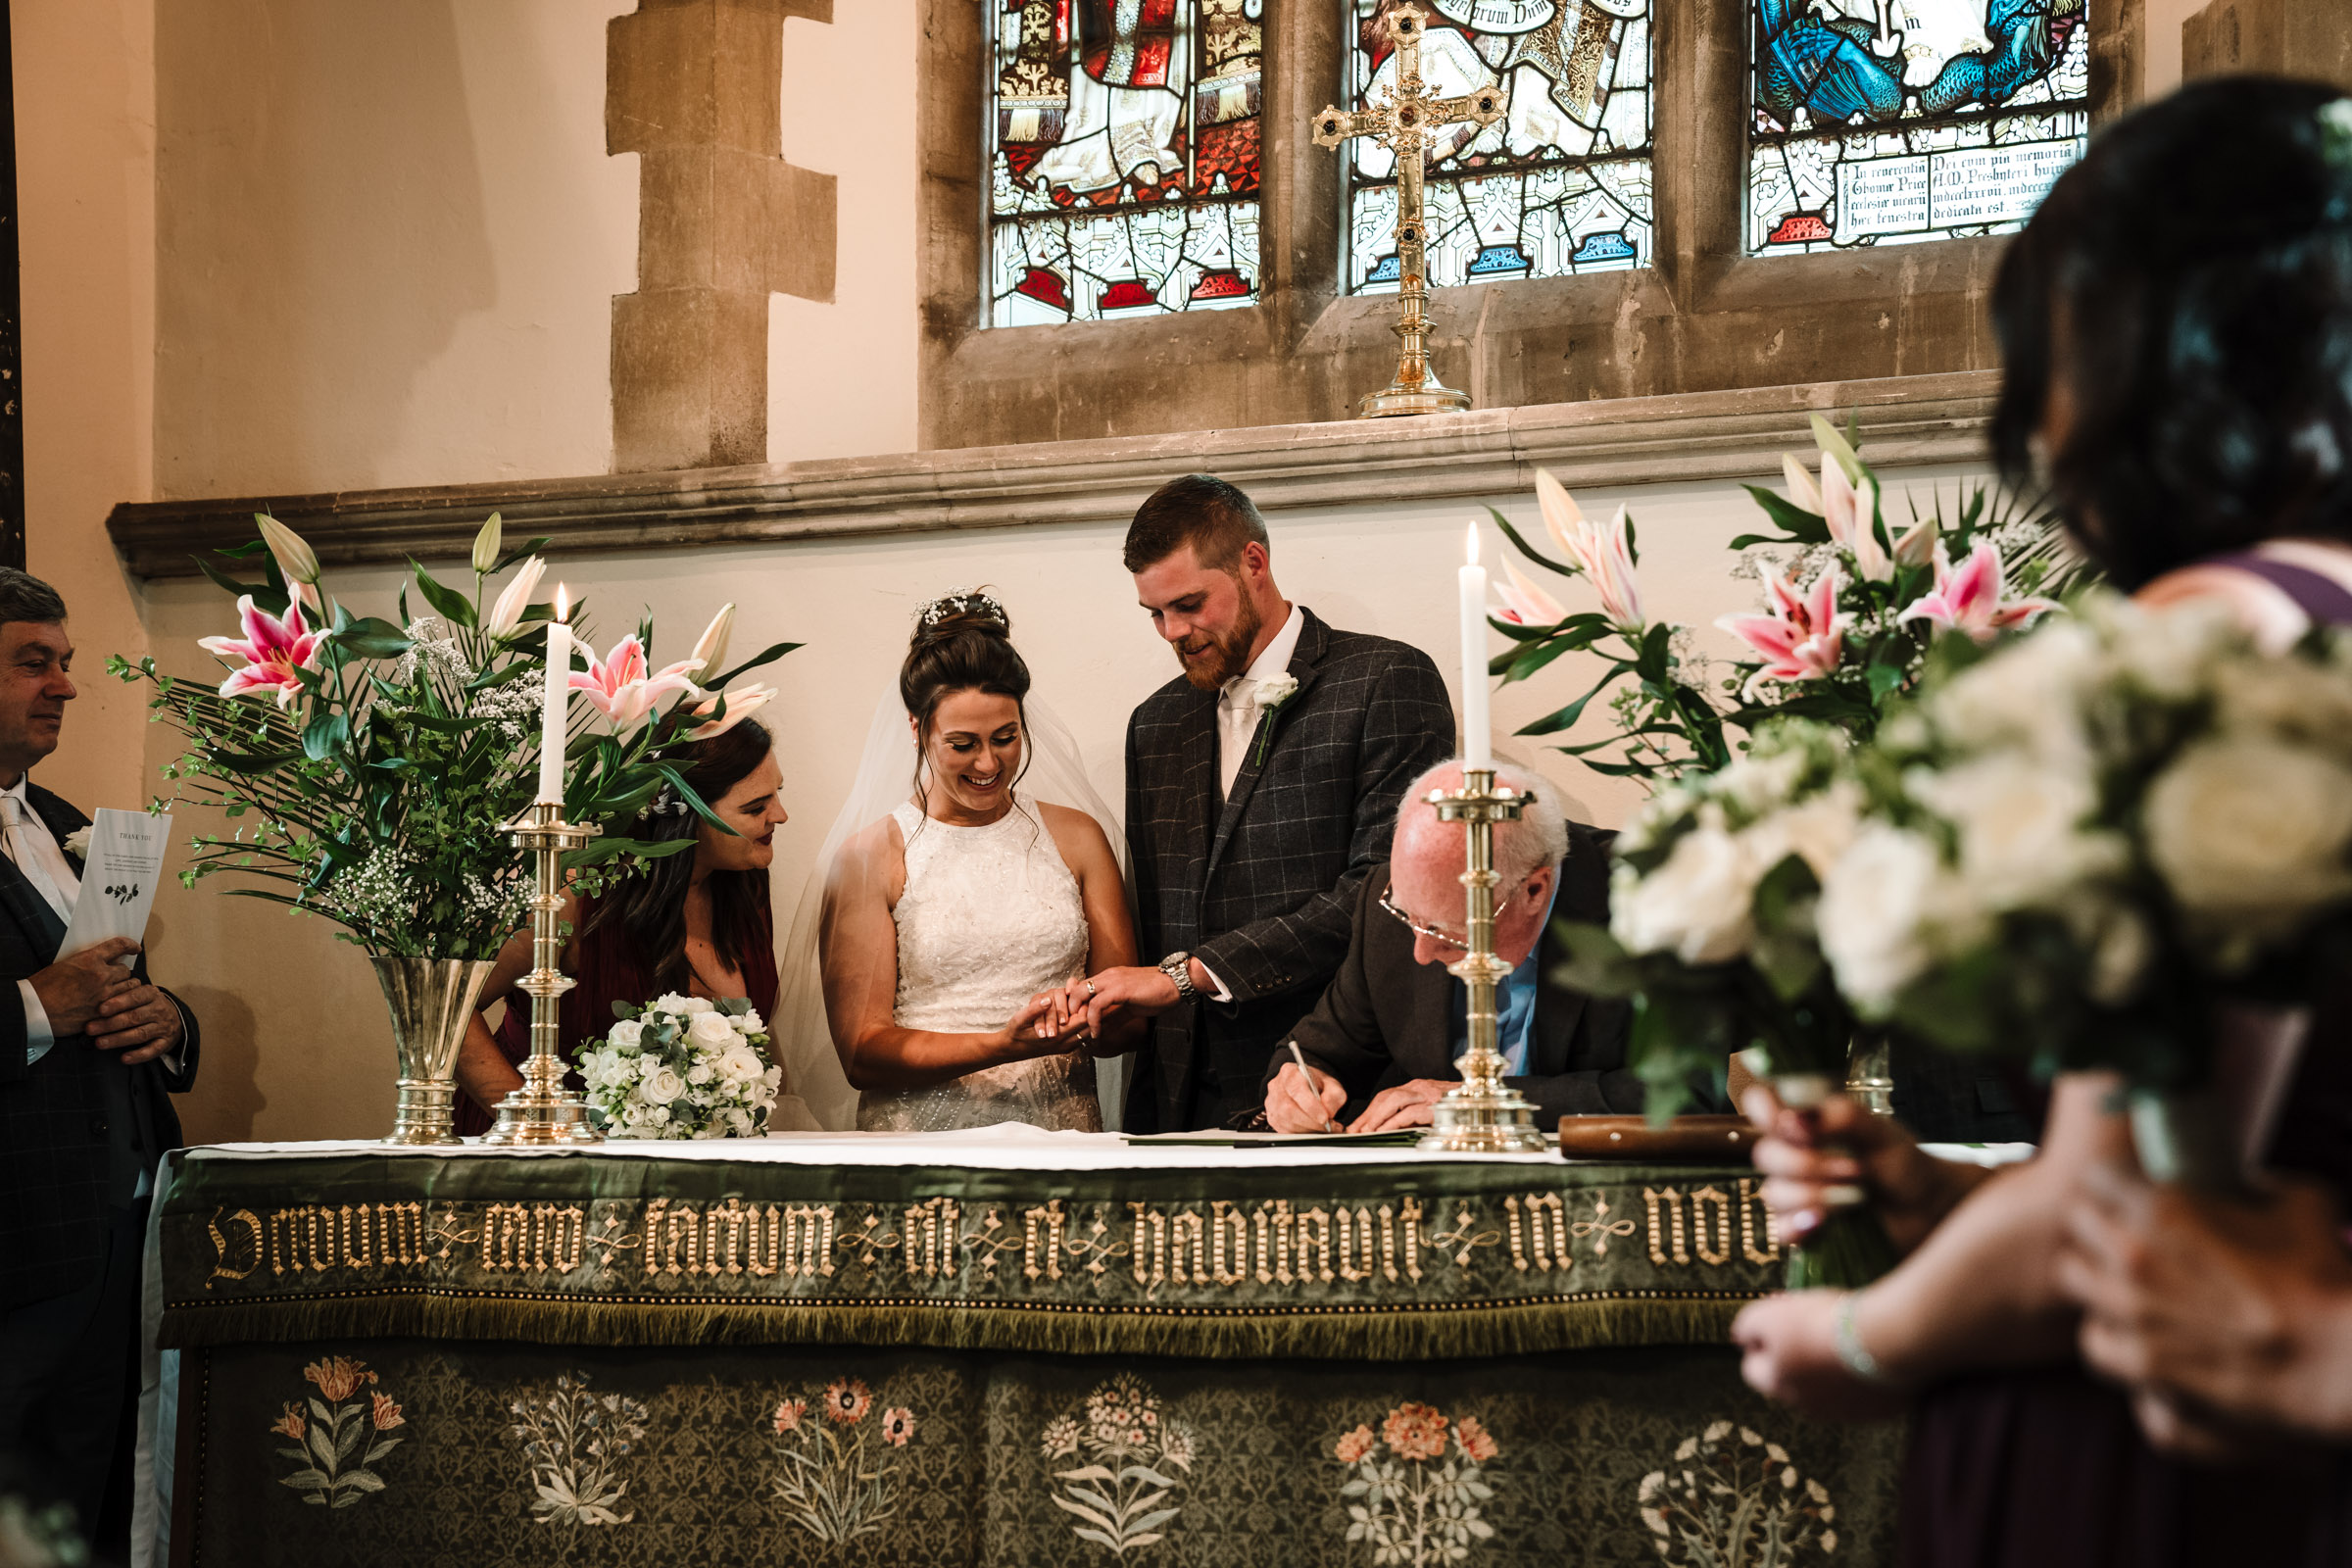 bride and groom at the alter, looking at their wedding rings as they sign the register